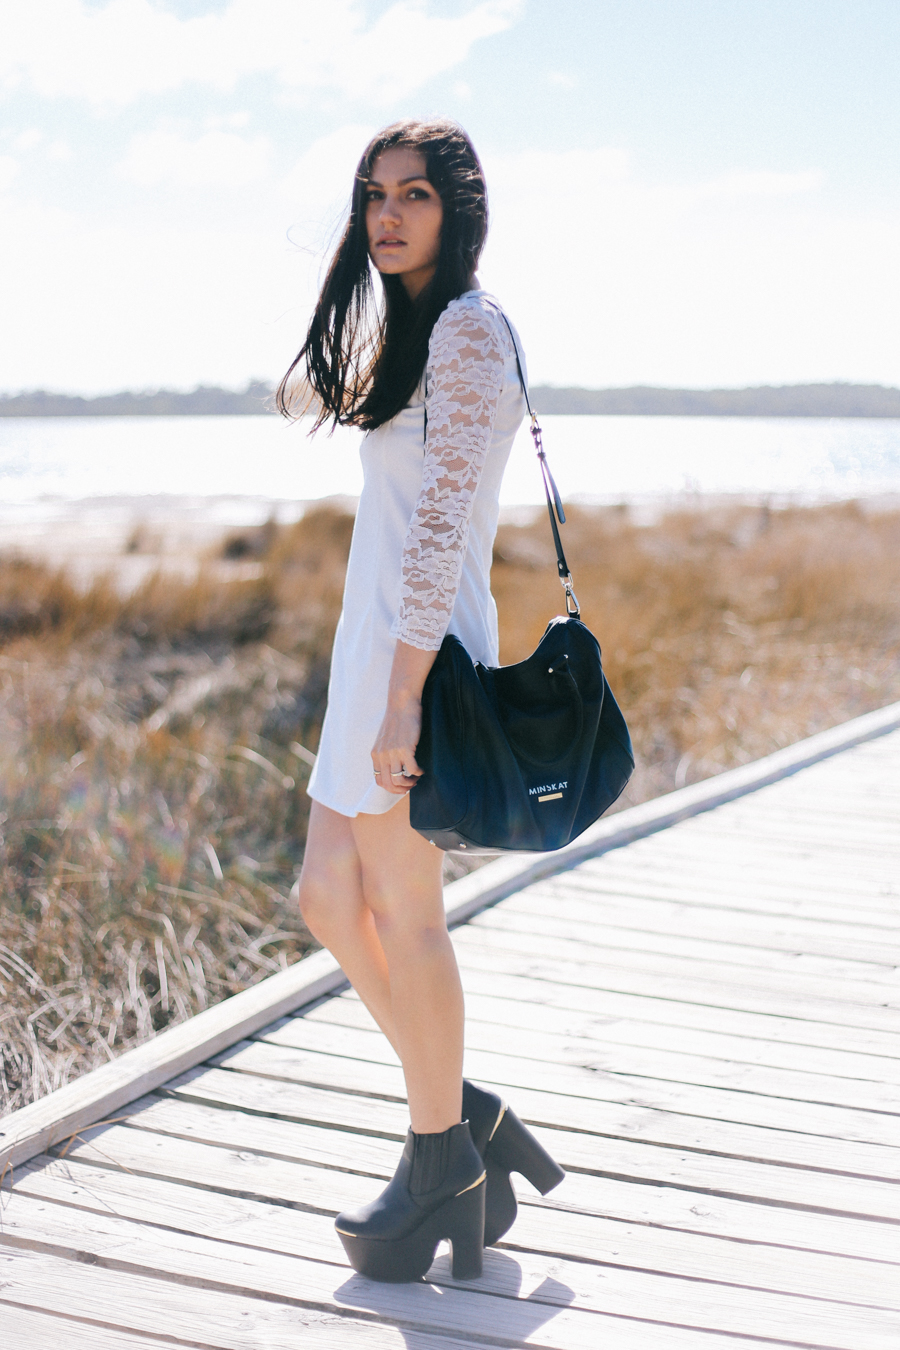 White lace shift dress from Persunmall. Minskat Copenhagen Mira bag.